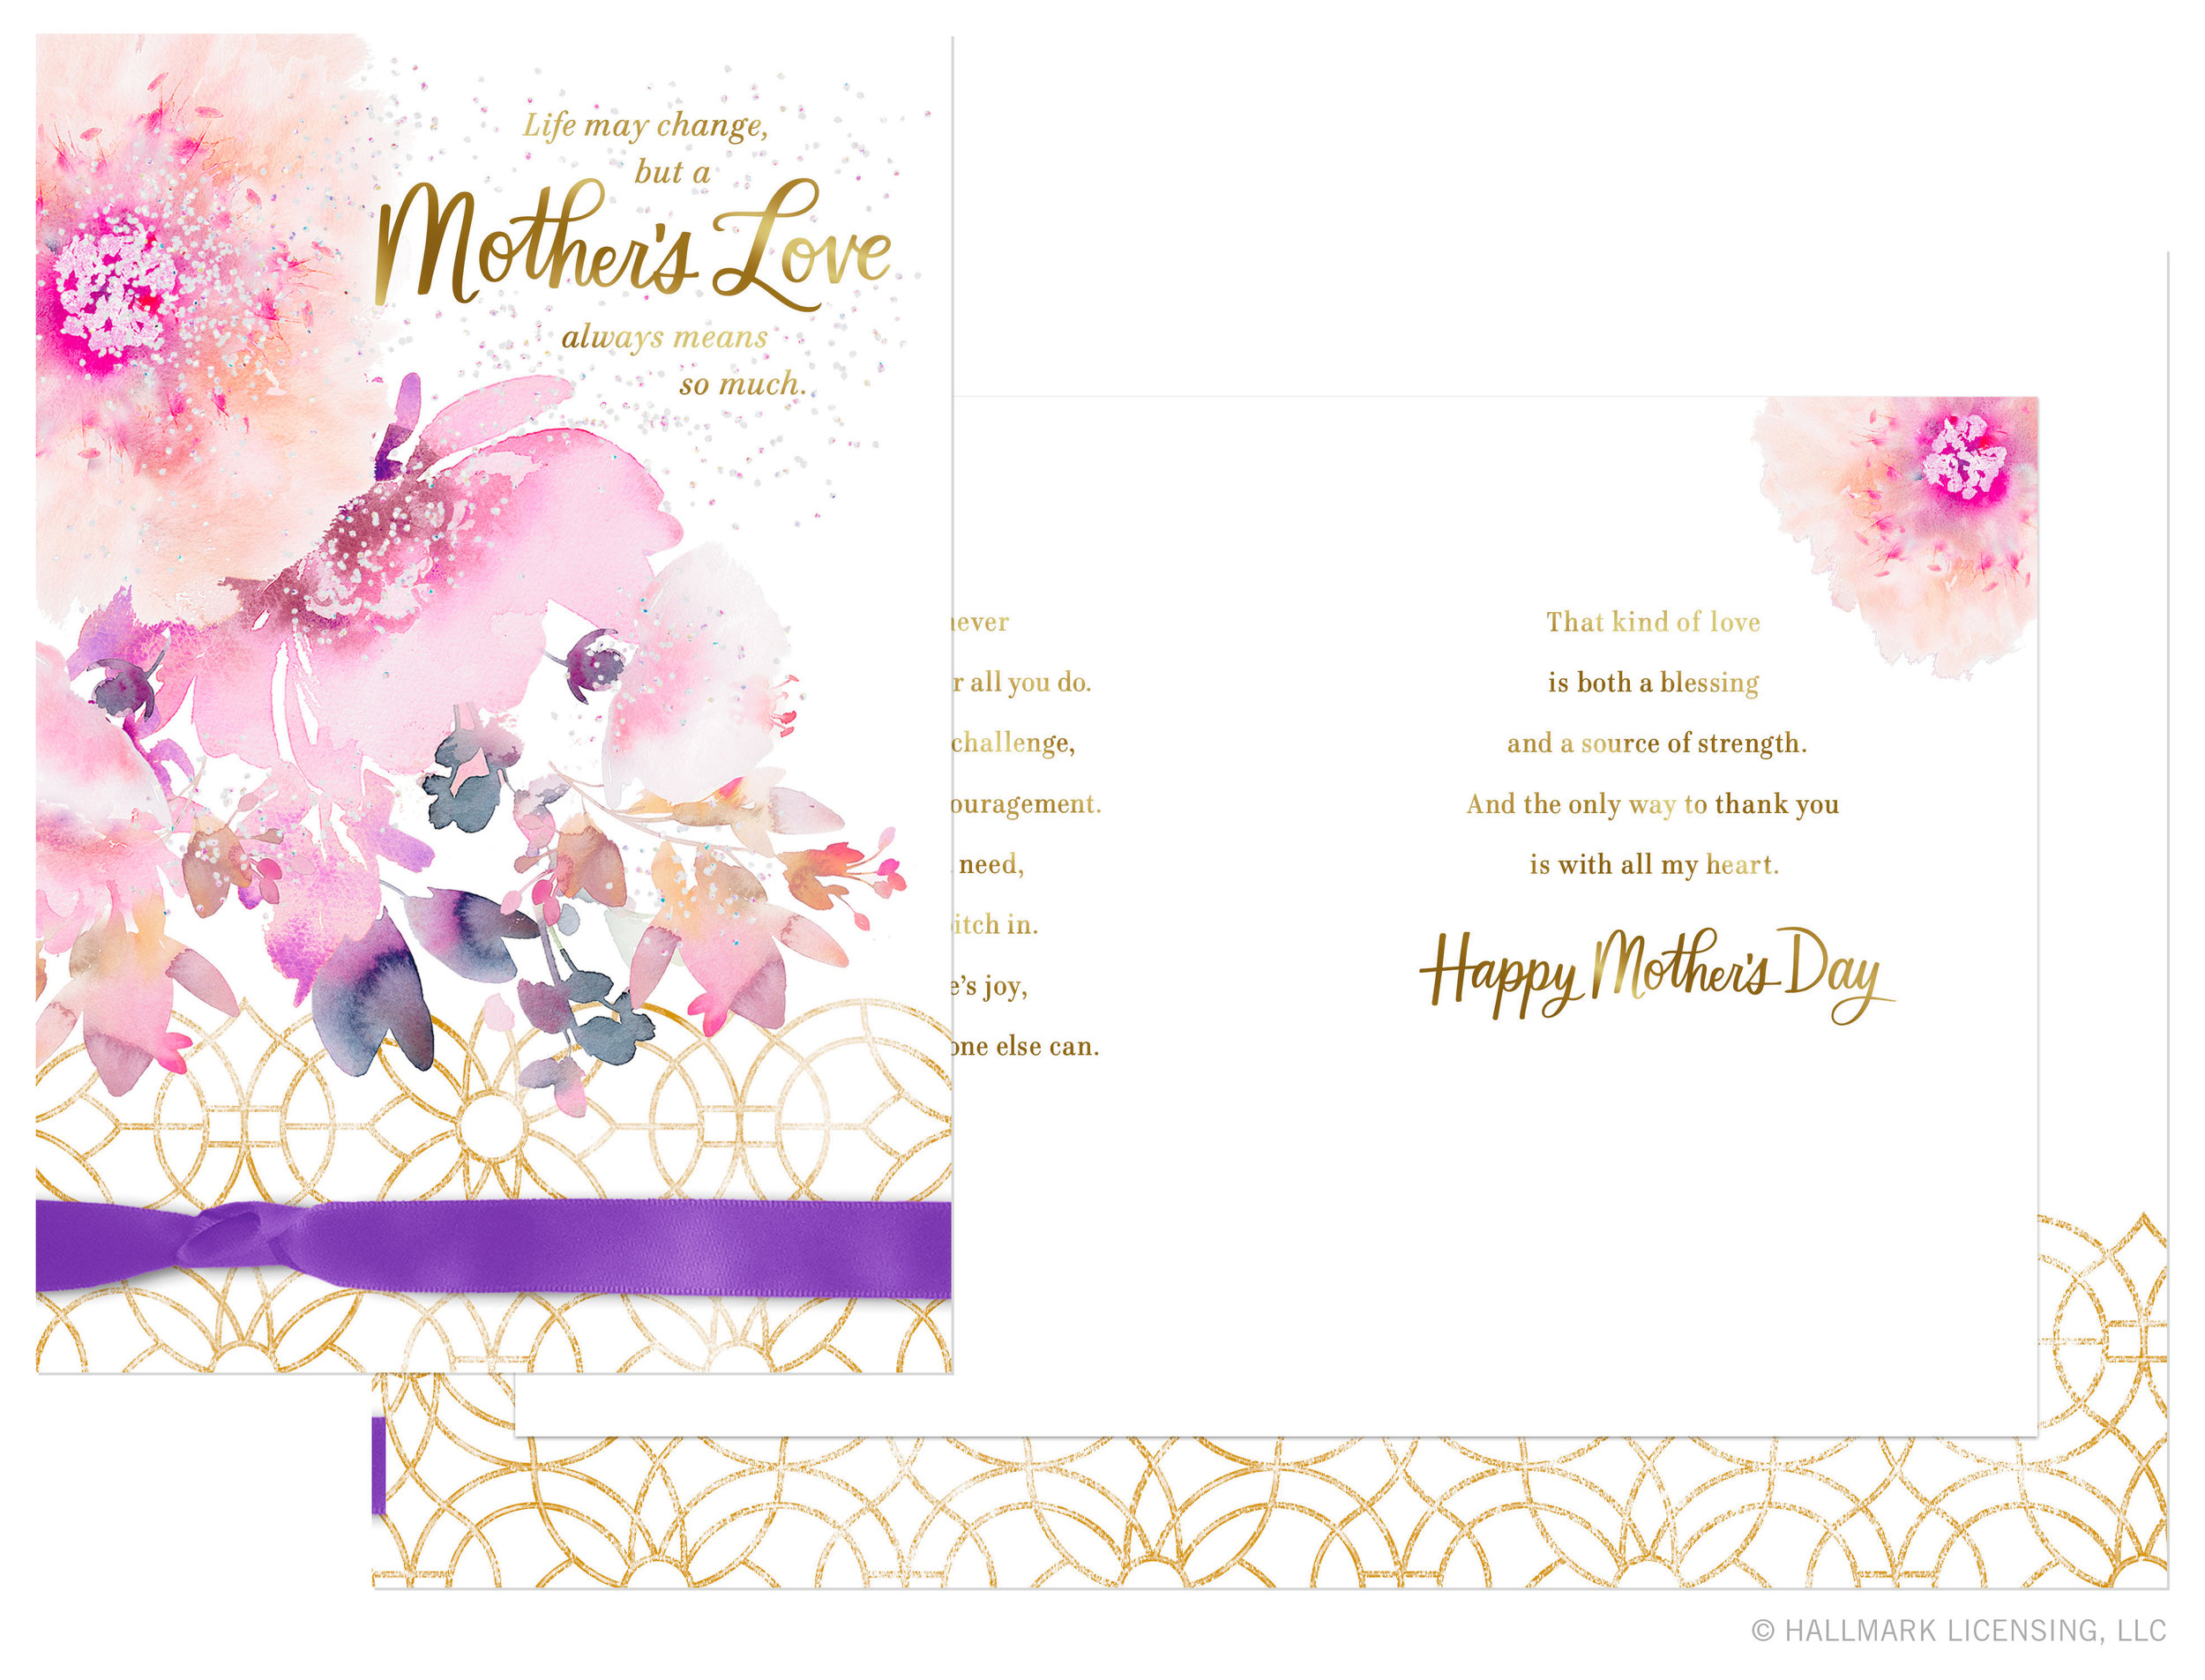 Letters Are Lovely | Mother's Day Cards for Hallmark